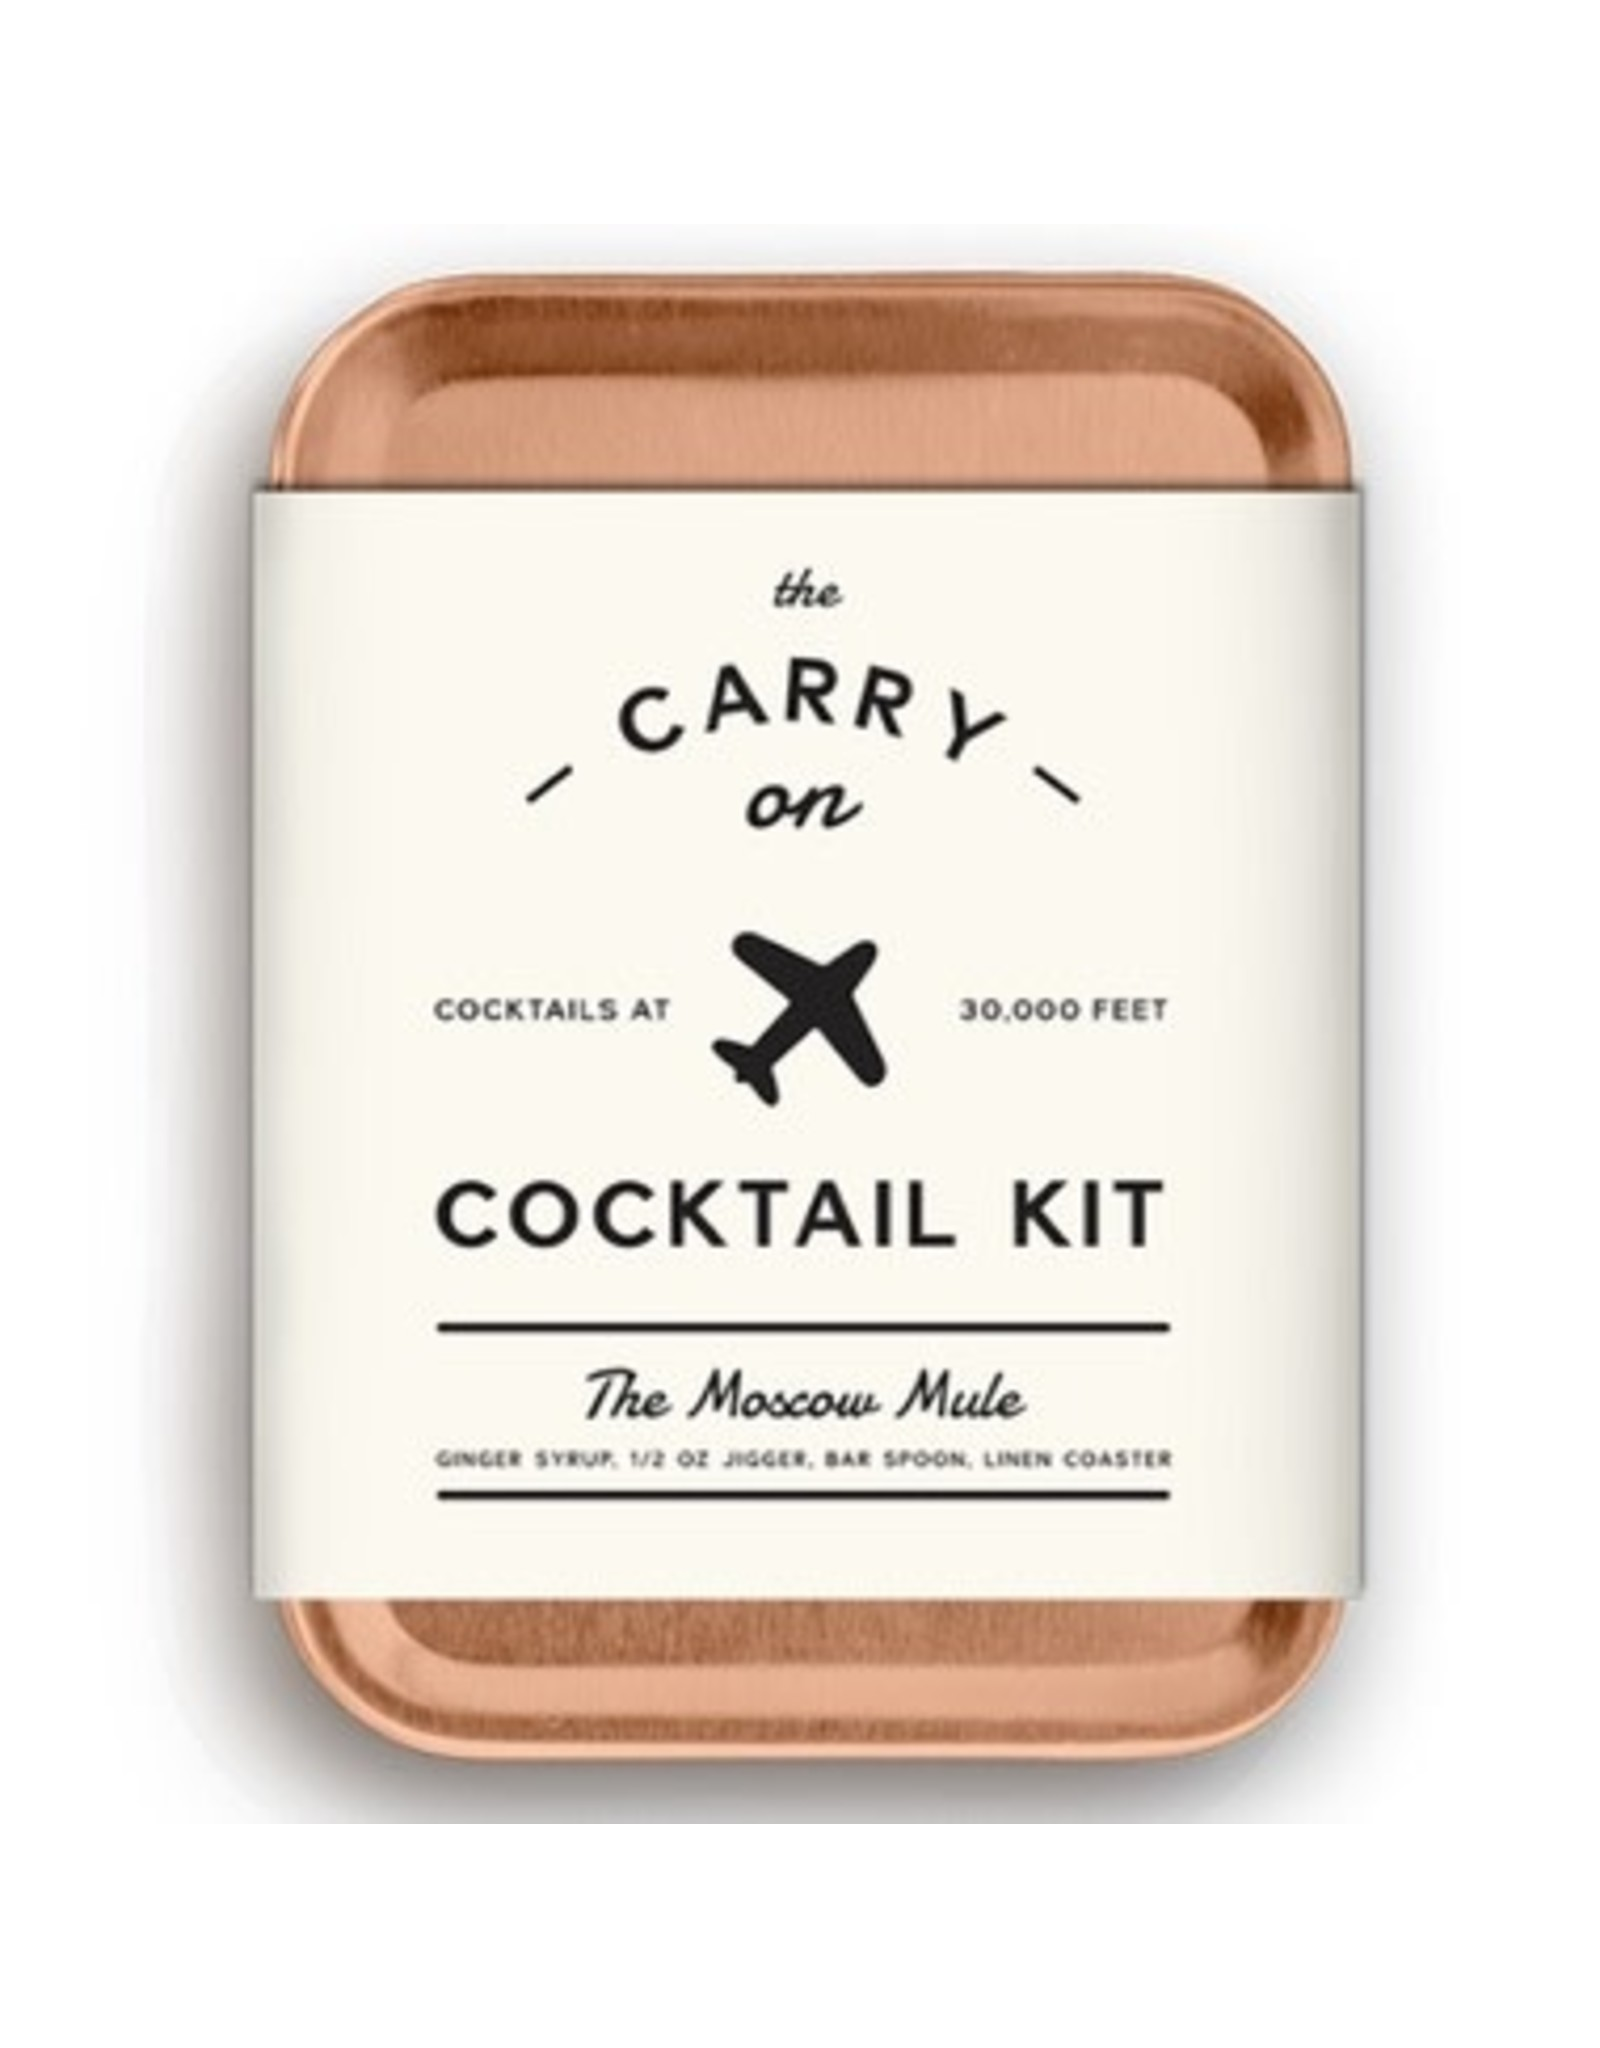 Carry On Cocktail Kit-Moscow Mule